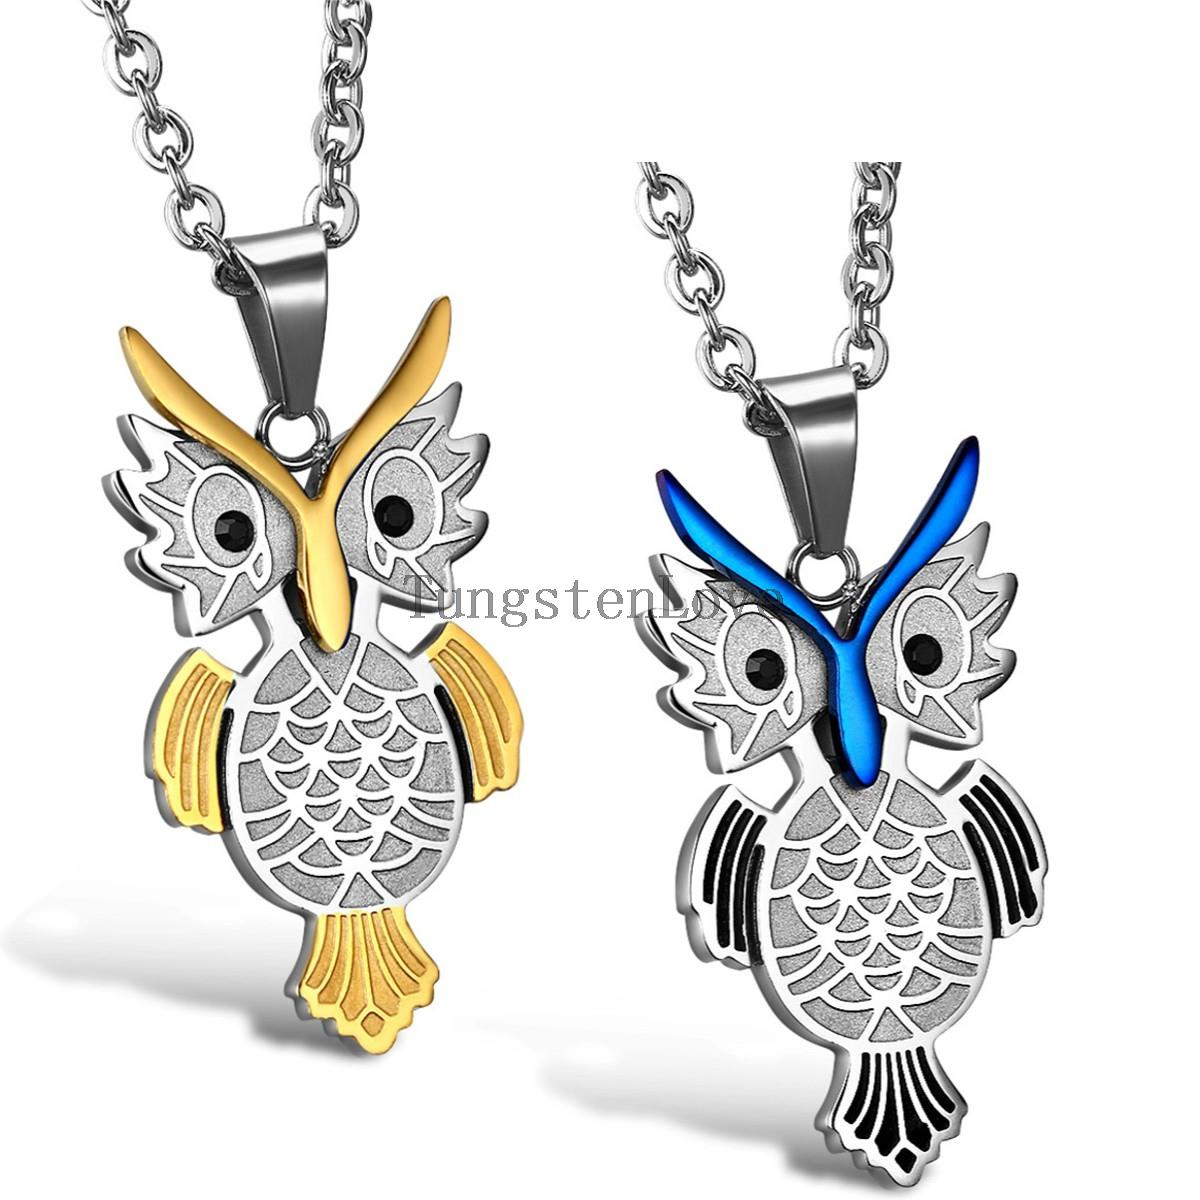 2015 New Necklaces jewelry 361L Stainless Steel necklaces Gold/Blue Animal Owl Pendant Necklace chain Men Jewelry(China (Mainland))